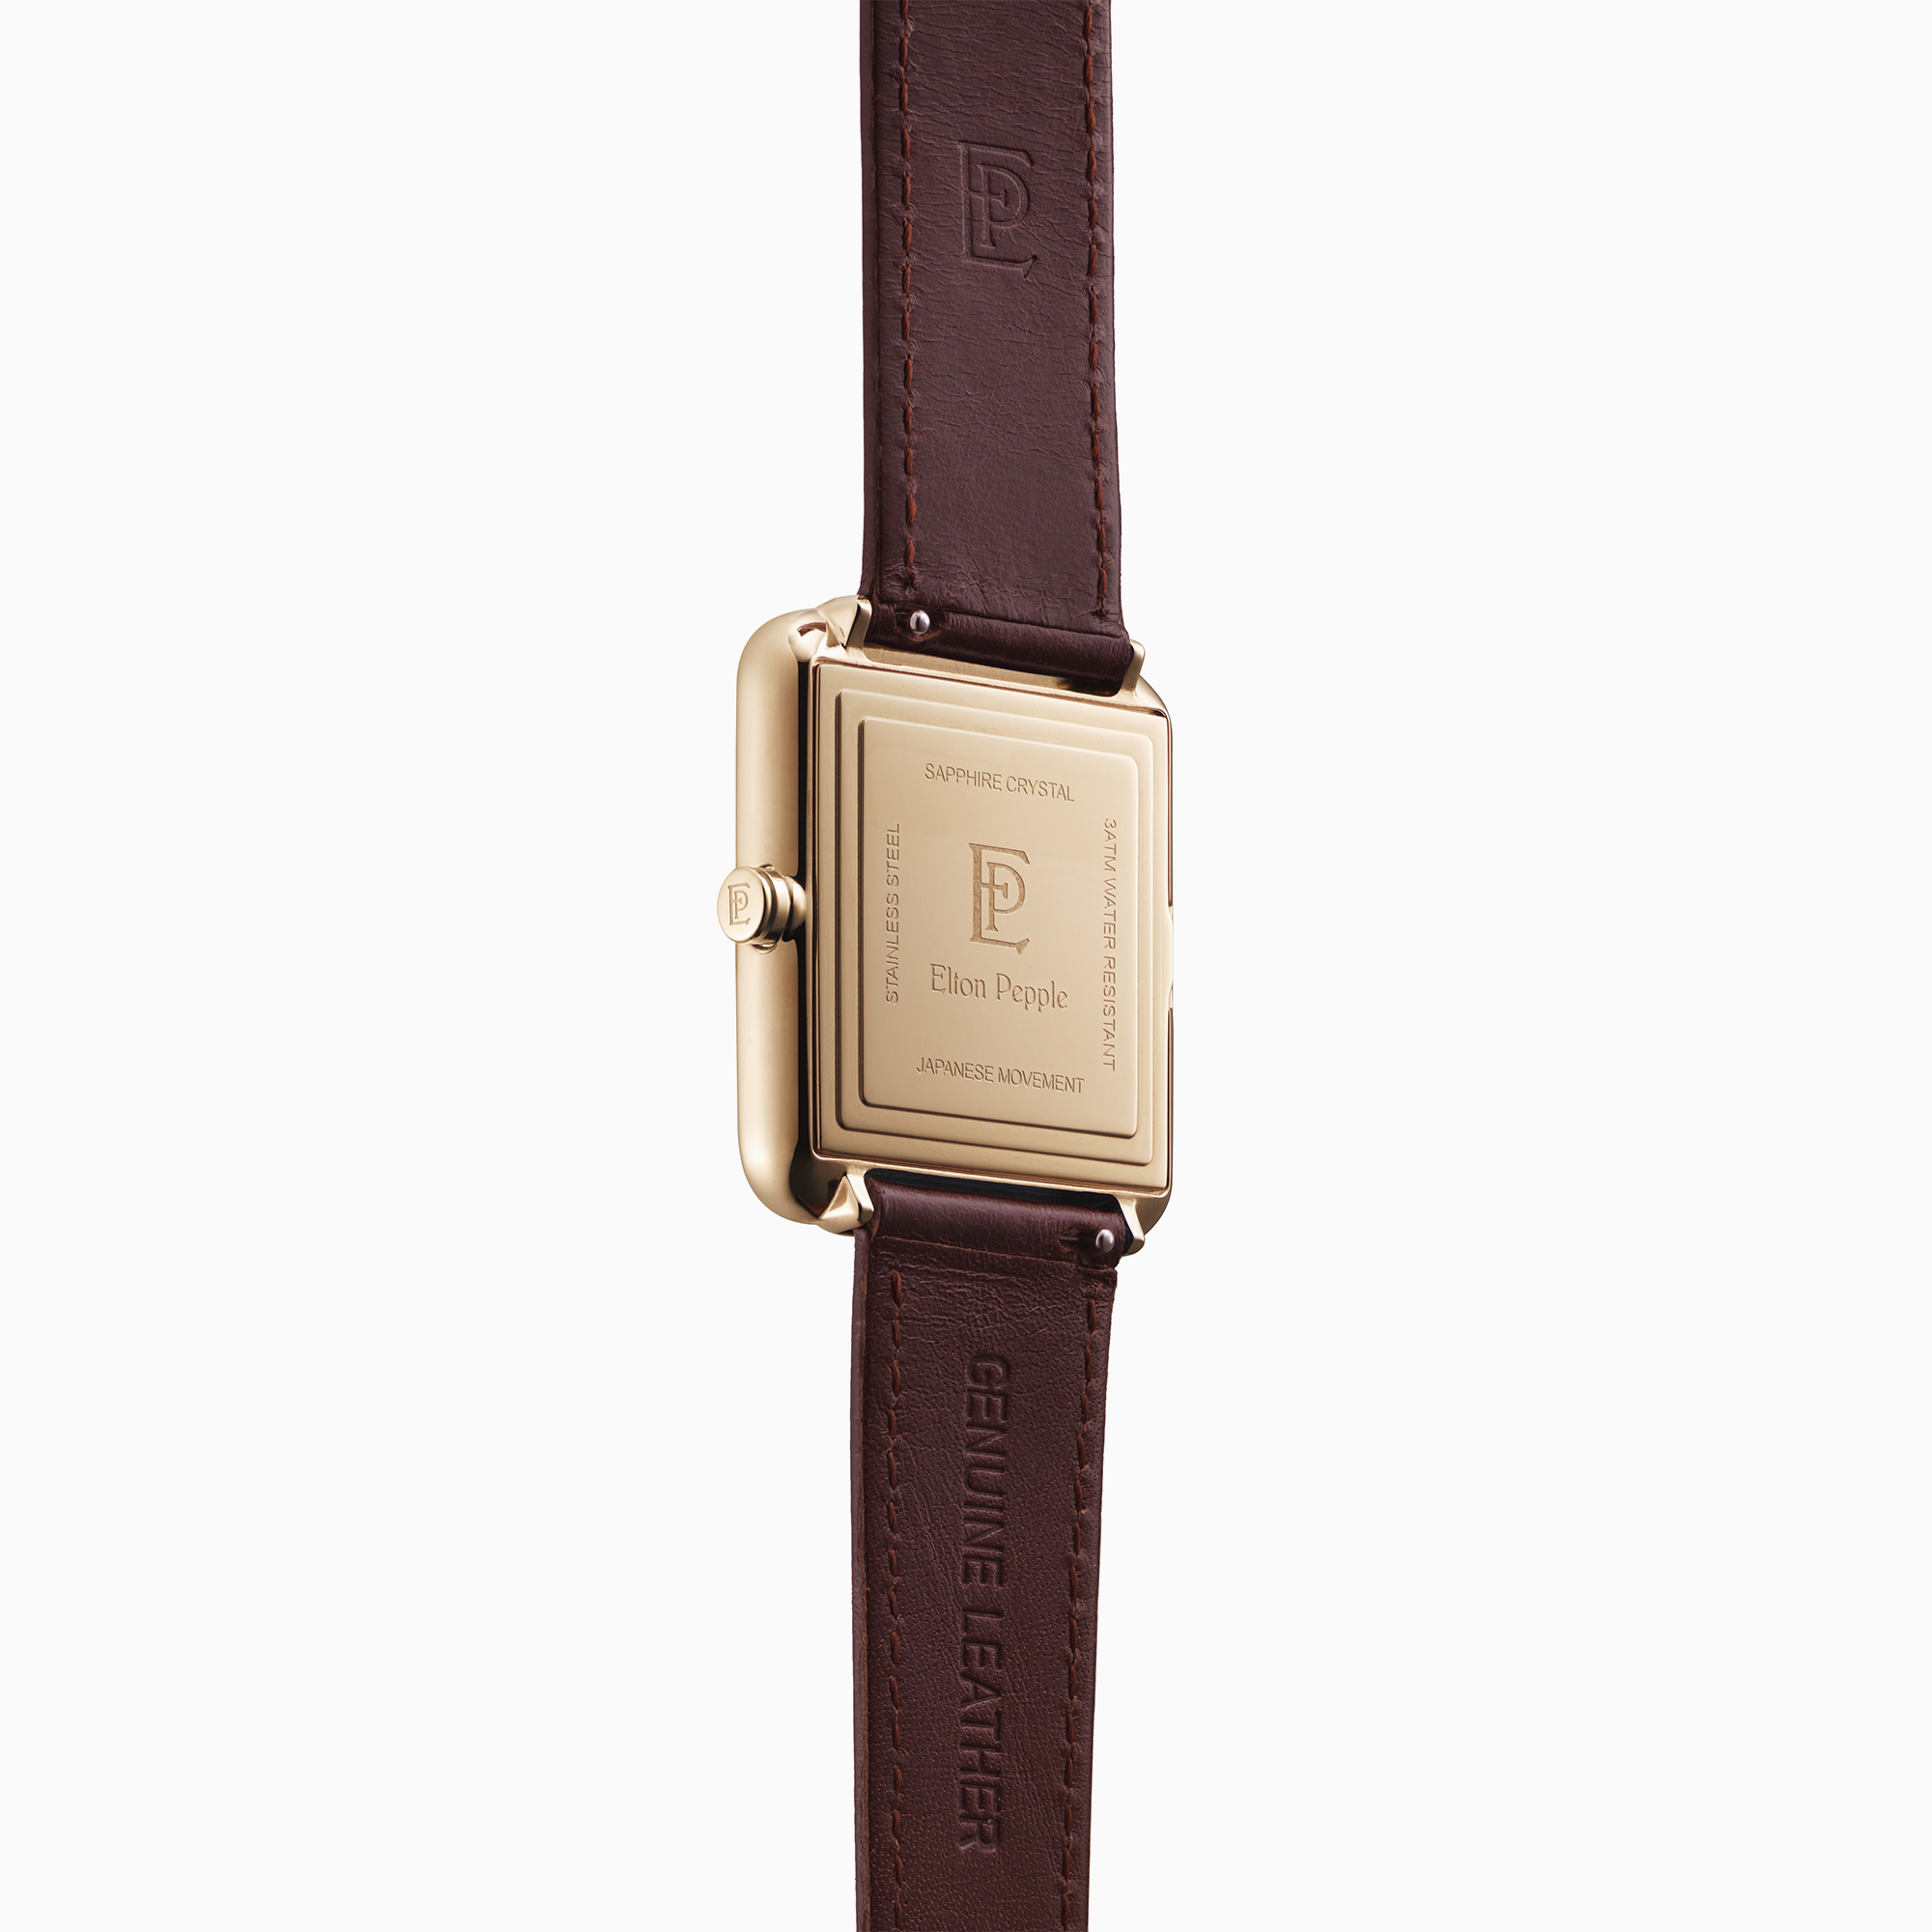 Modern Montclare features a sleek black stick dial and rectangular rose gold case